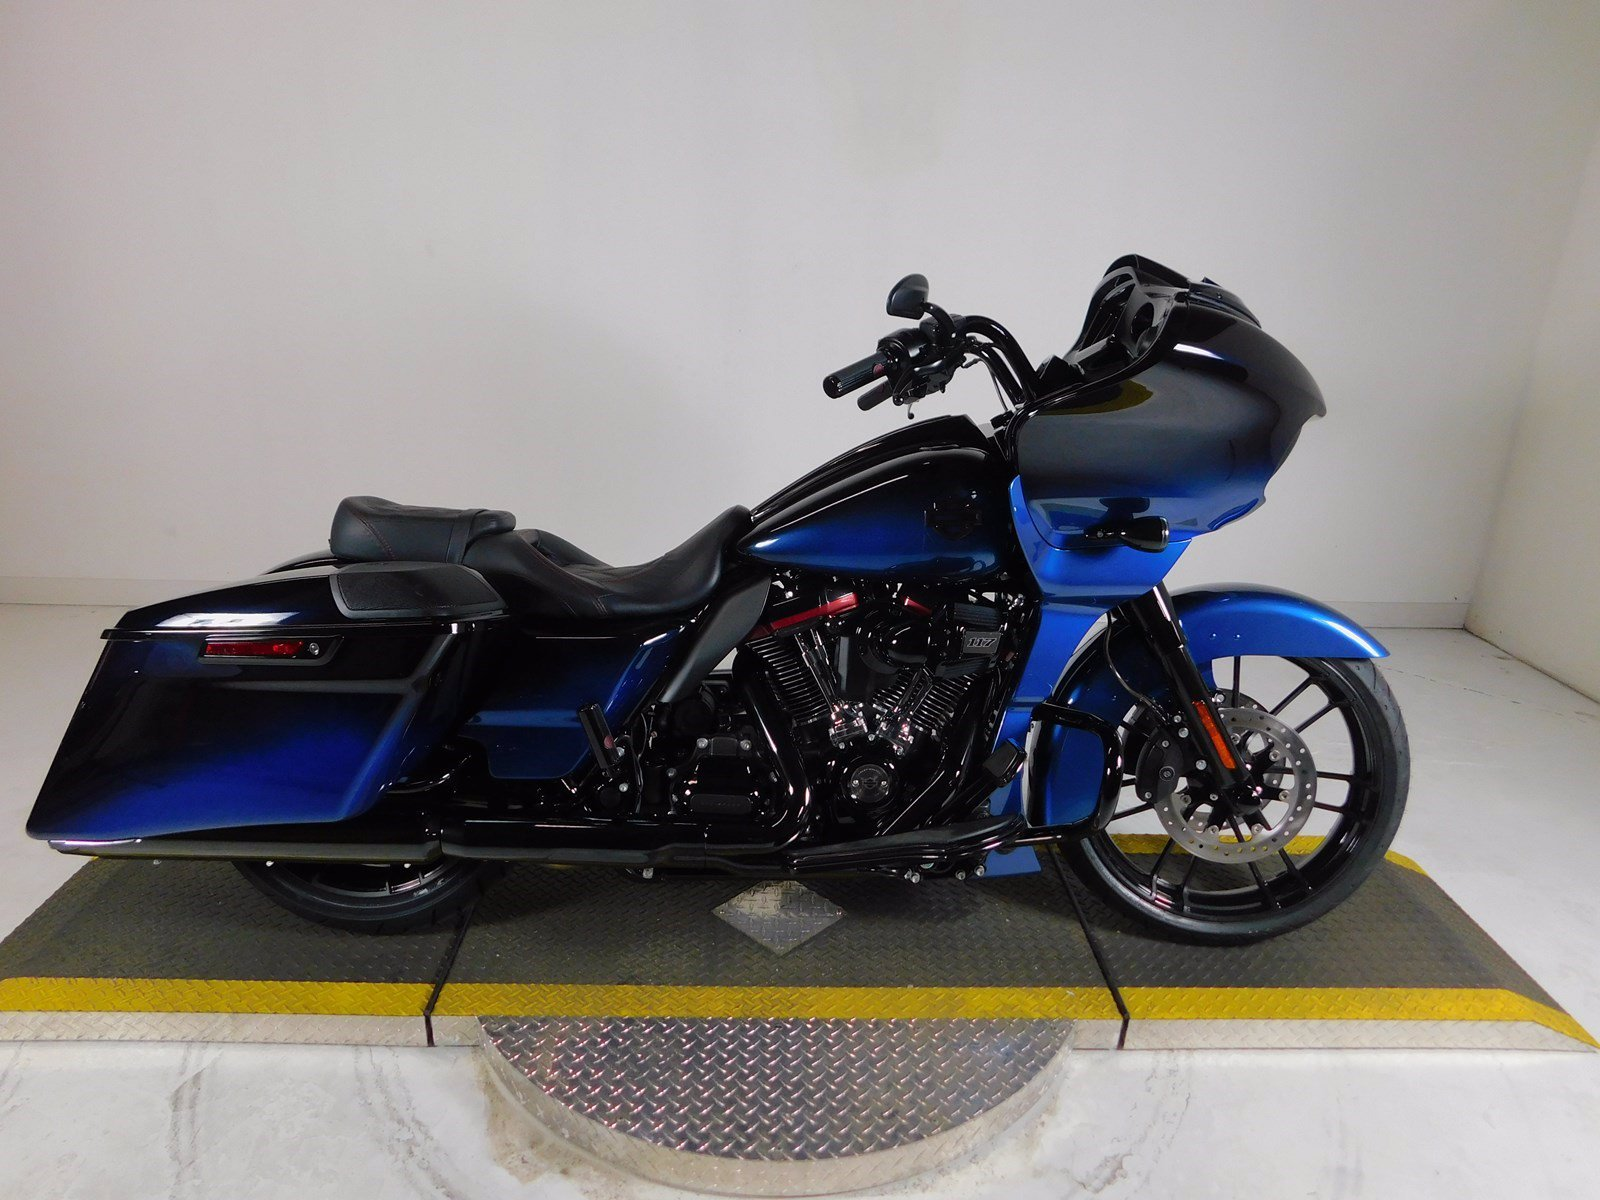 New 2019 Harley Davidson Road Glide Cvo Fltrxse Cvo Touring In Fort